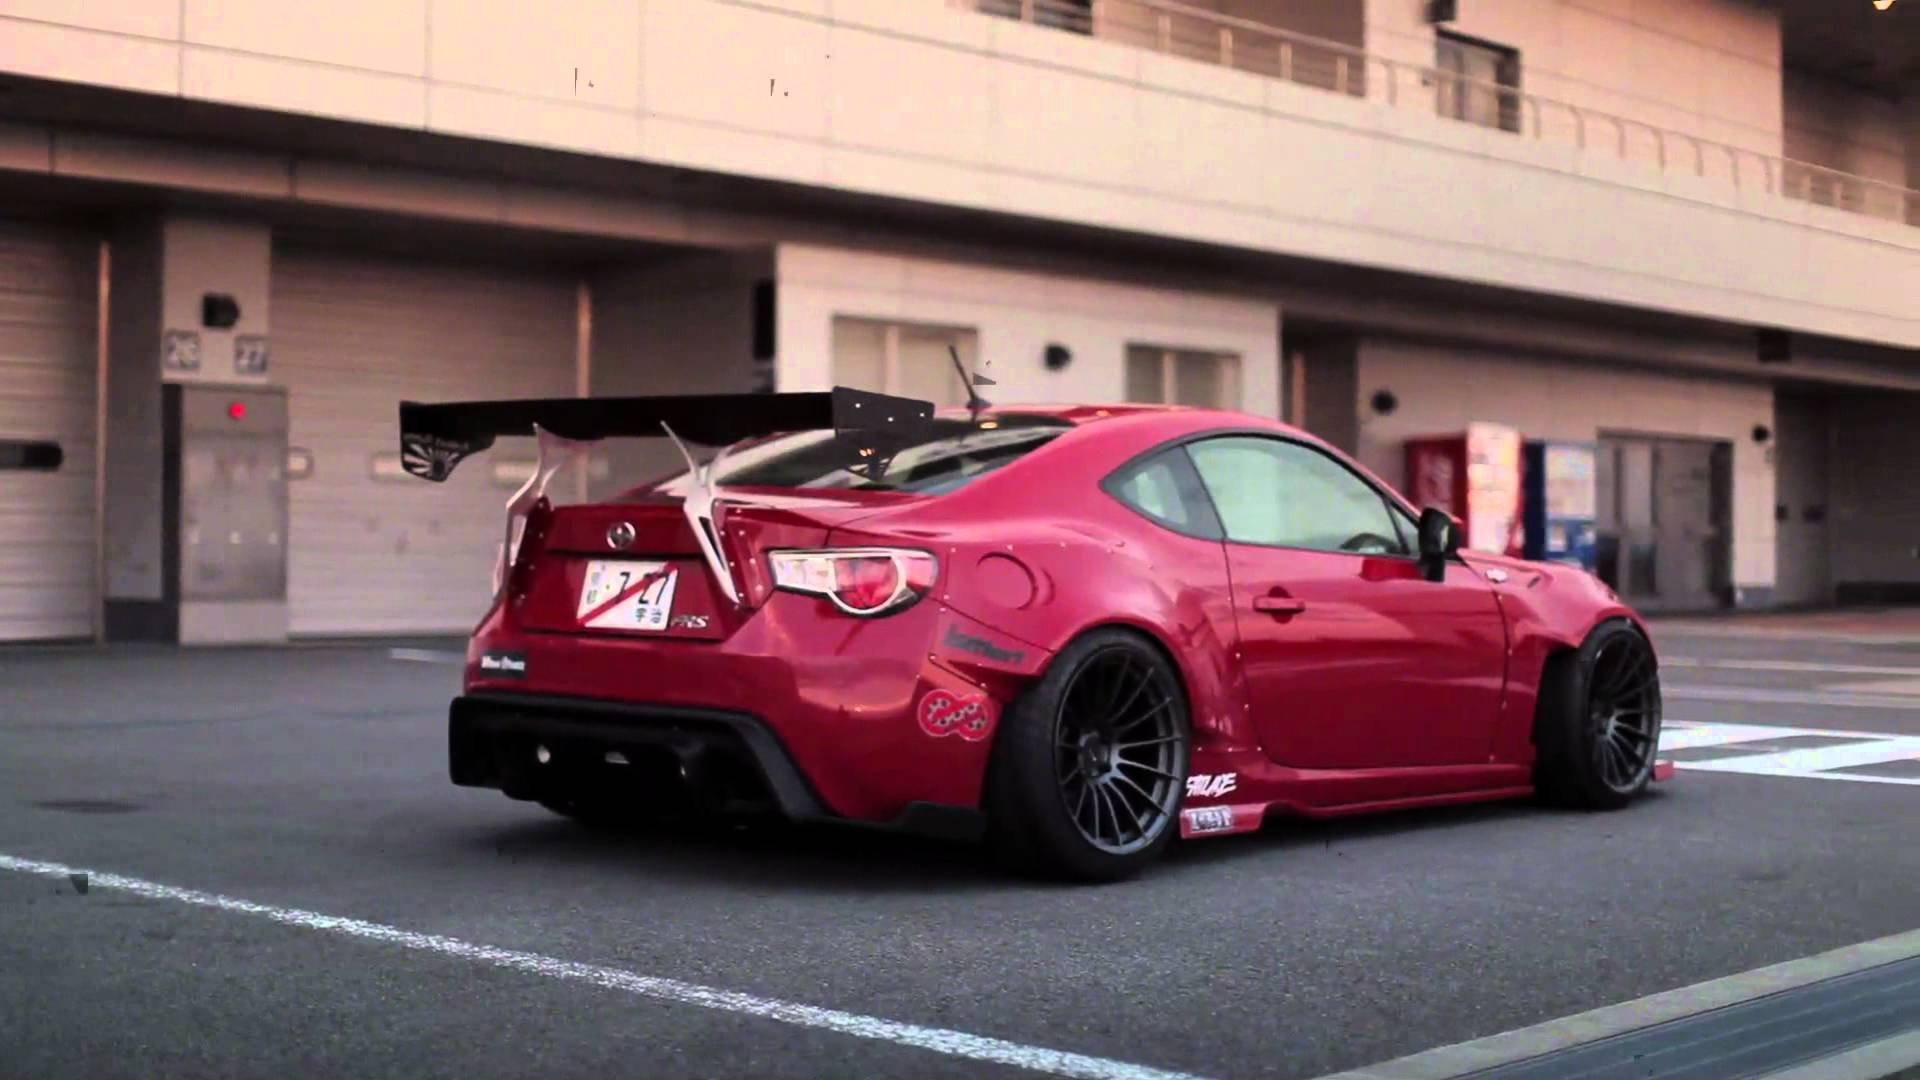 Toyota-gt86 scion-FRS subaru-BRZ coupe tuning cars japan wallpaper |  | 496994 | WallpaperUP